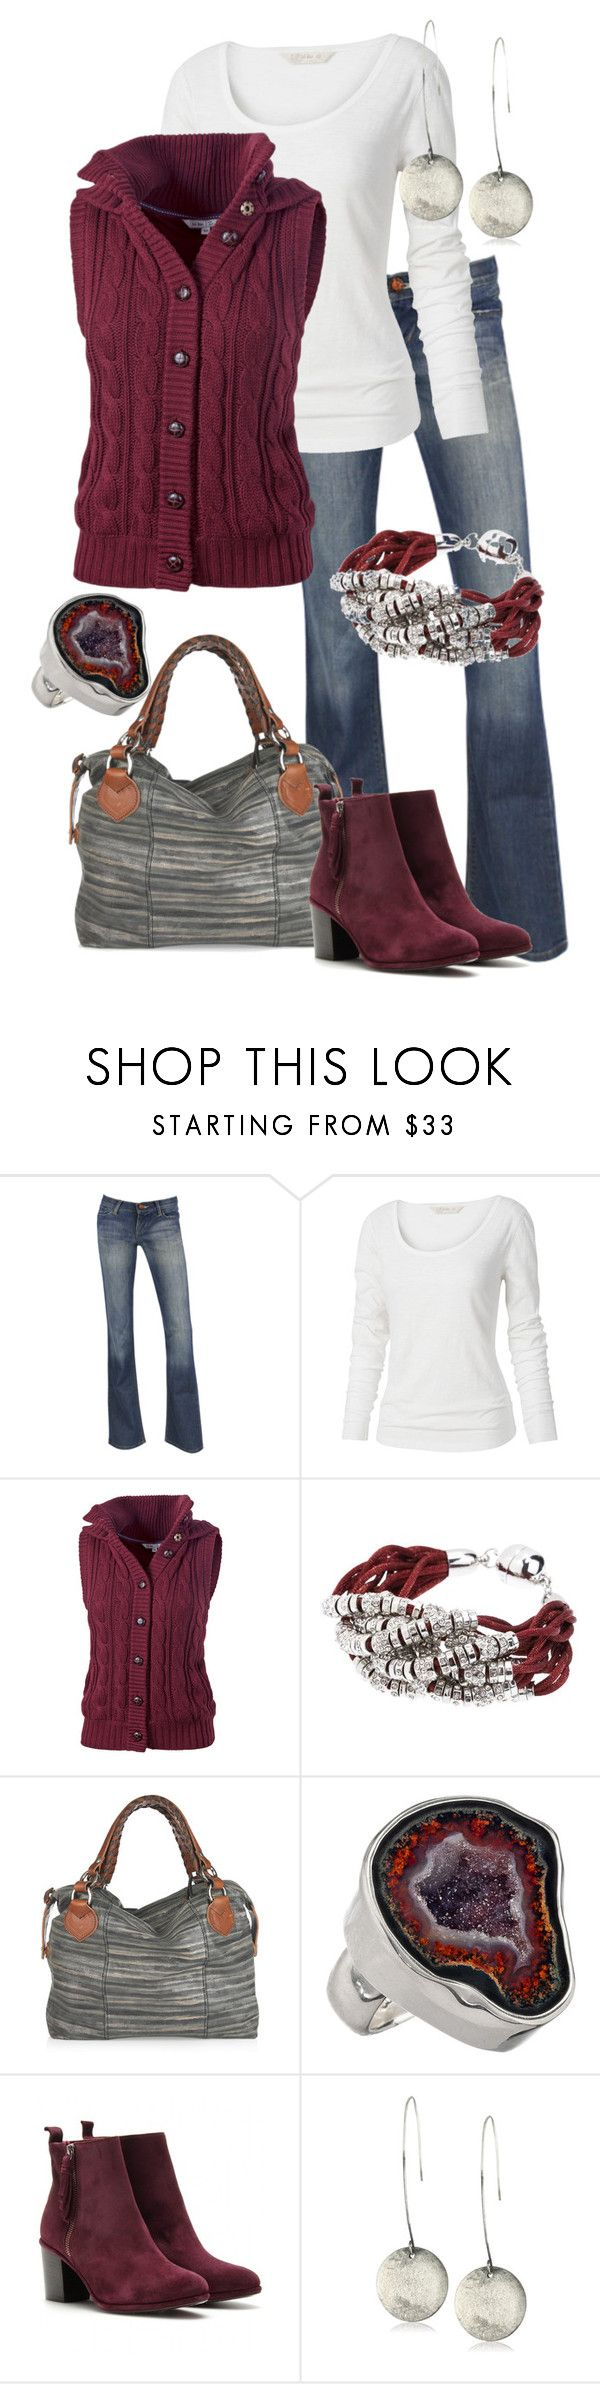 """""""Untitled #214"""" by alison-louis-ellis ❤ liked on Polyvore featuring INDIE HAIR, Fat Face, Armani Exchange, Pauric Sweeney, Charles Albert and Opening Ceremony"""